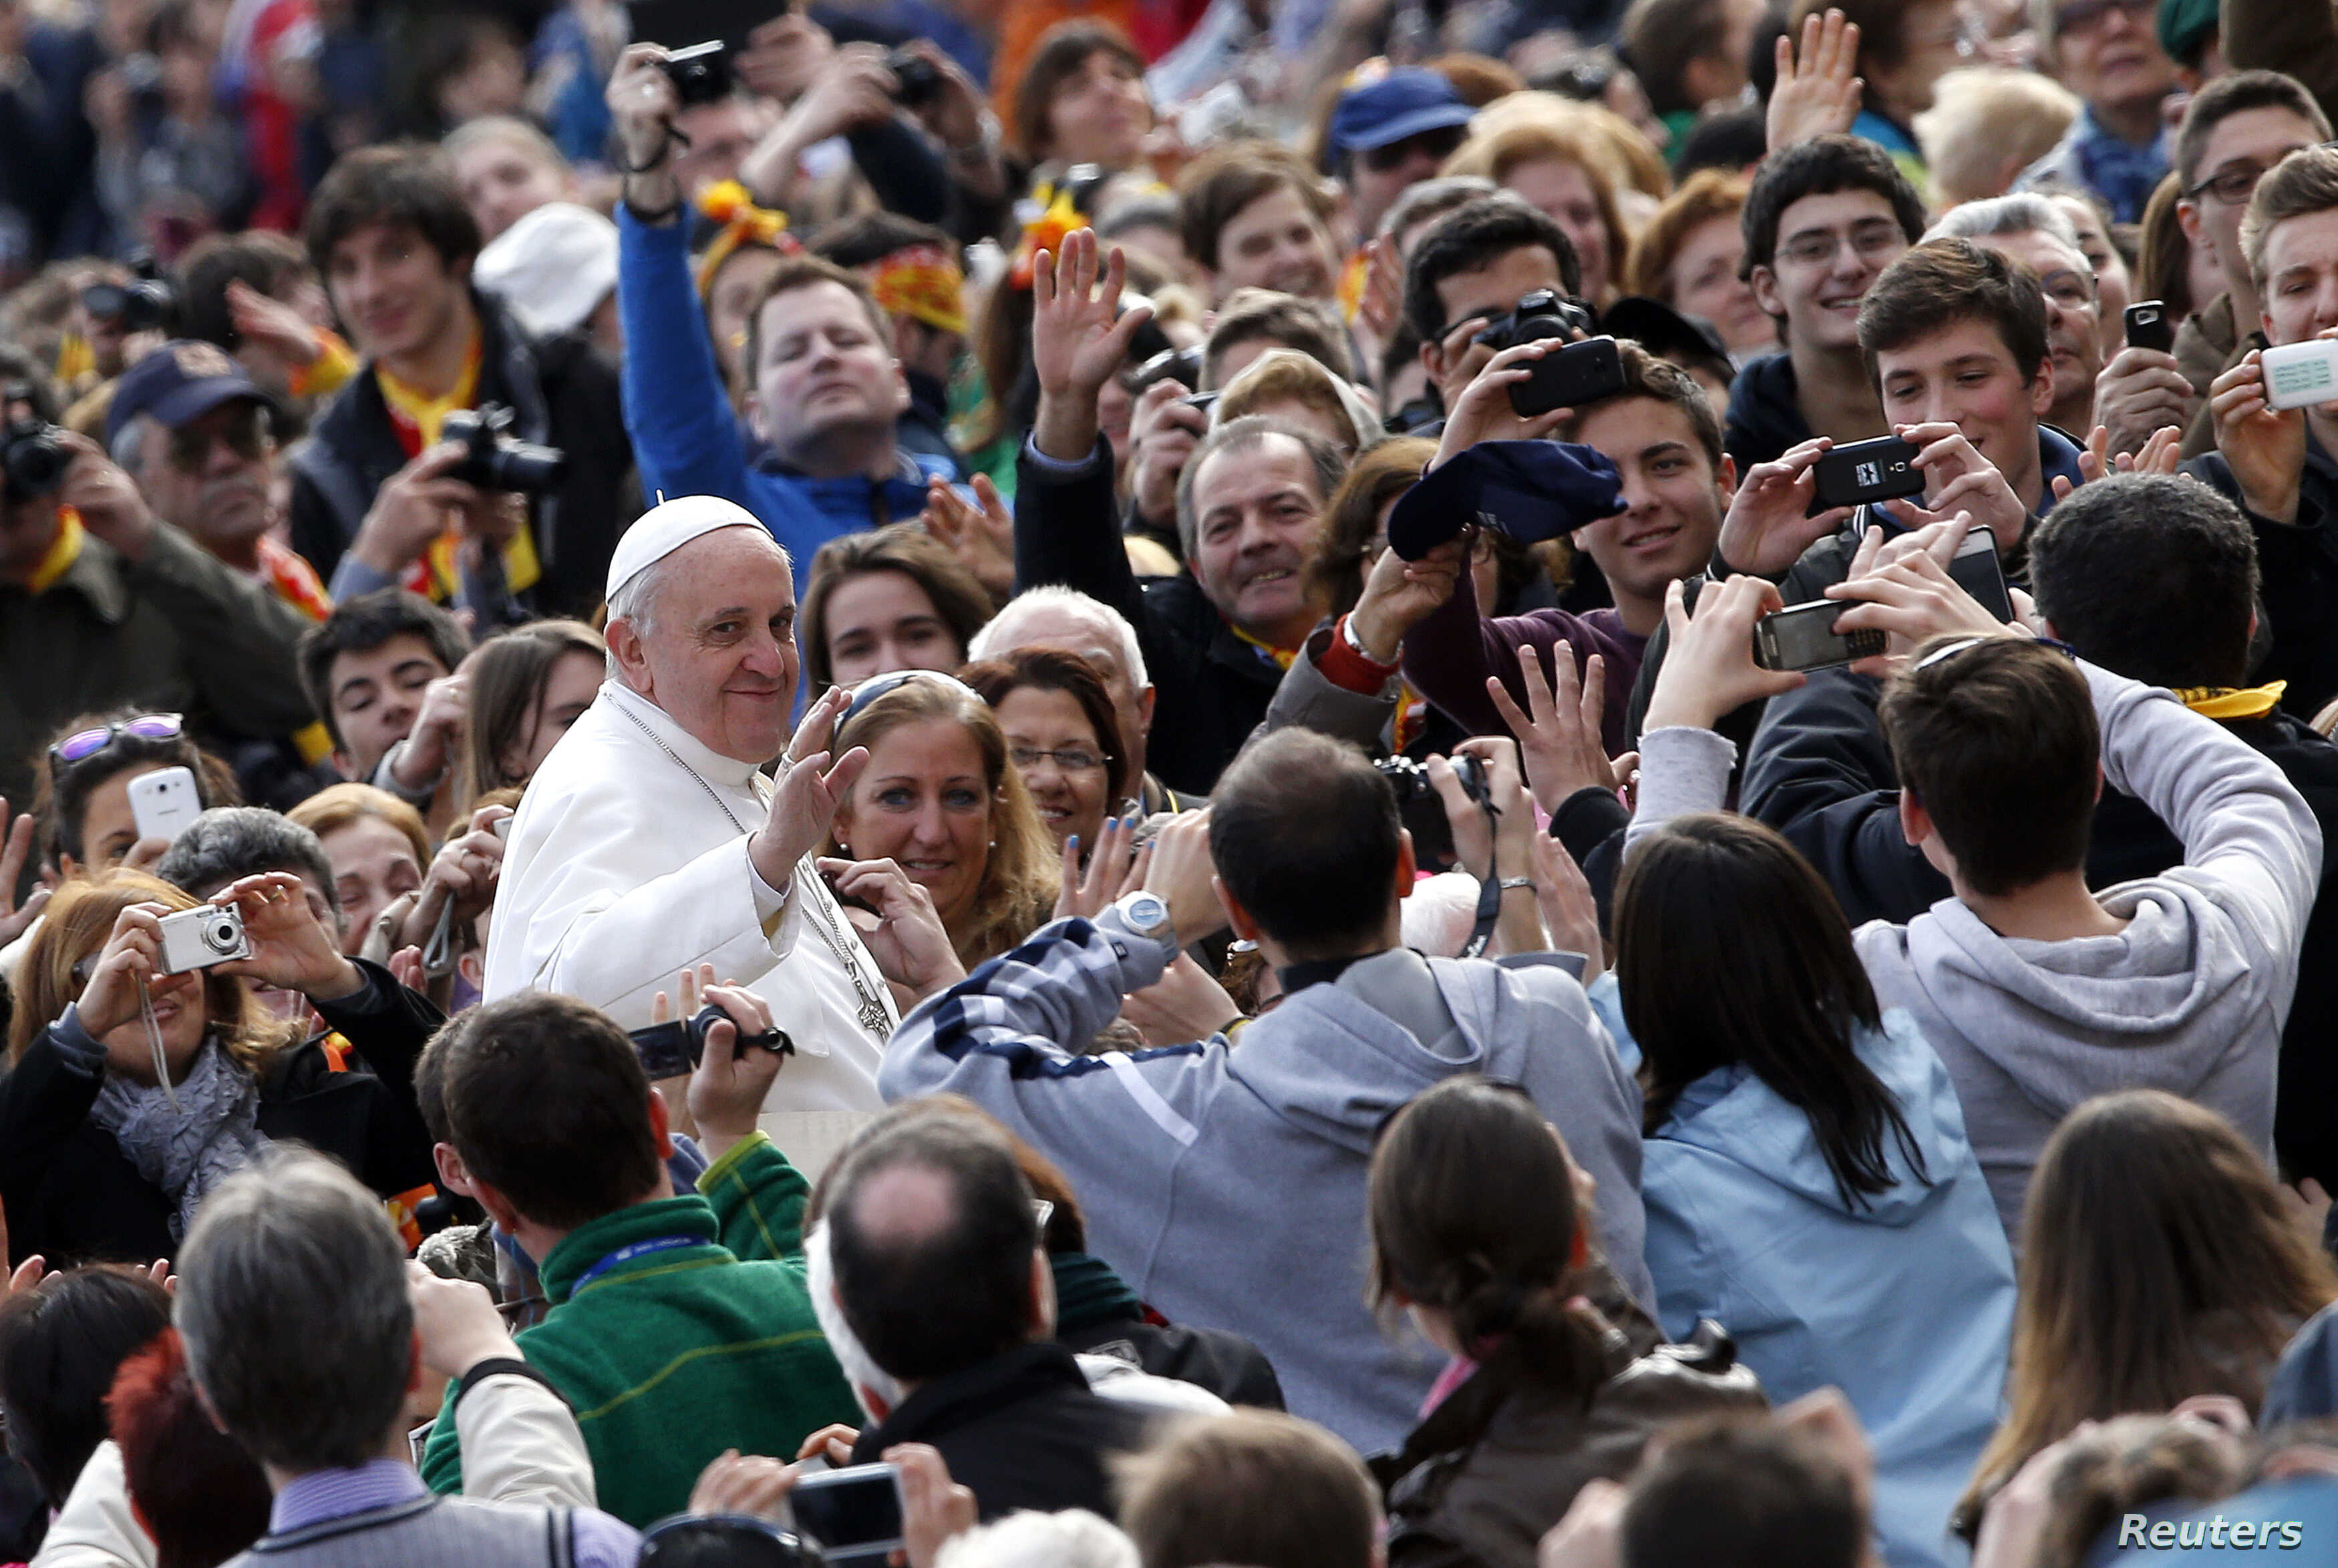 Pope Francis waves as he arrives to lead a weekly general audience in Saint Peter's Basilica, at the Vatican, Apr. 3, 2013.